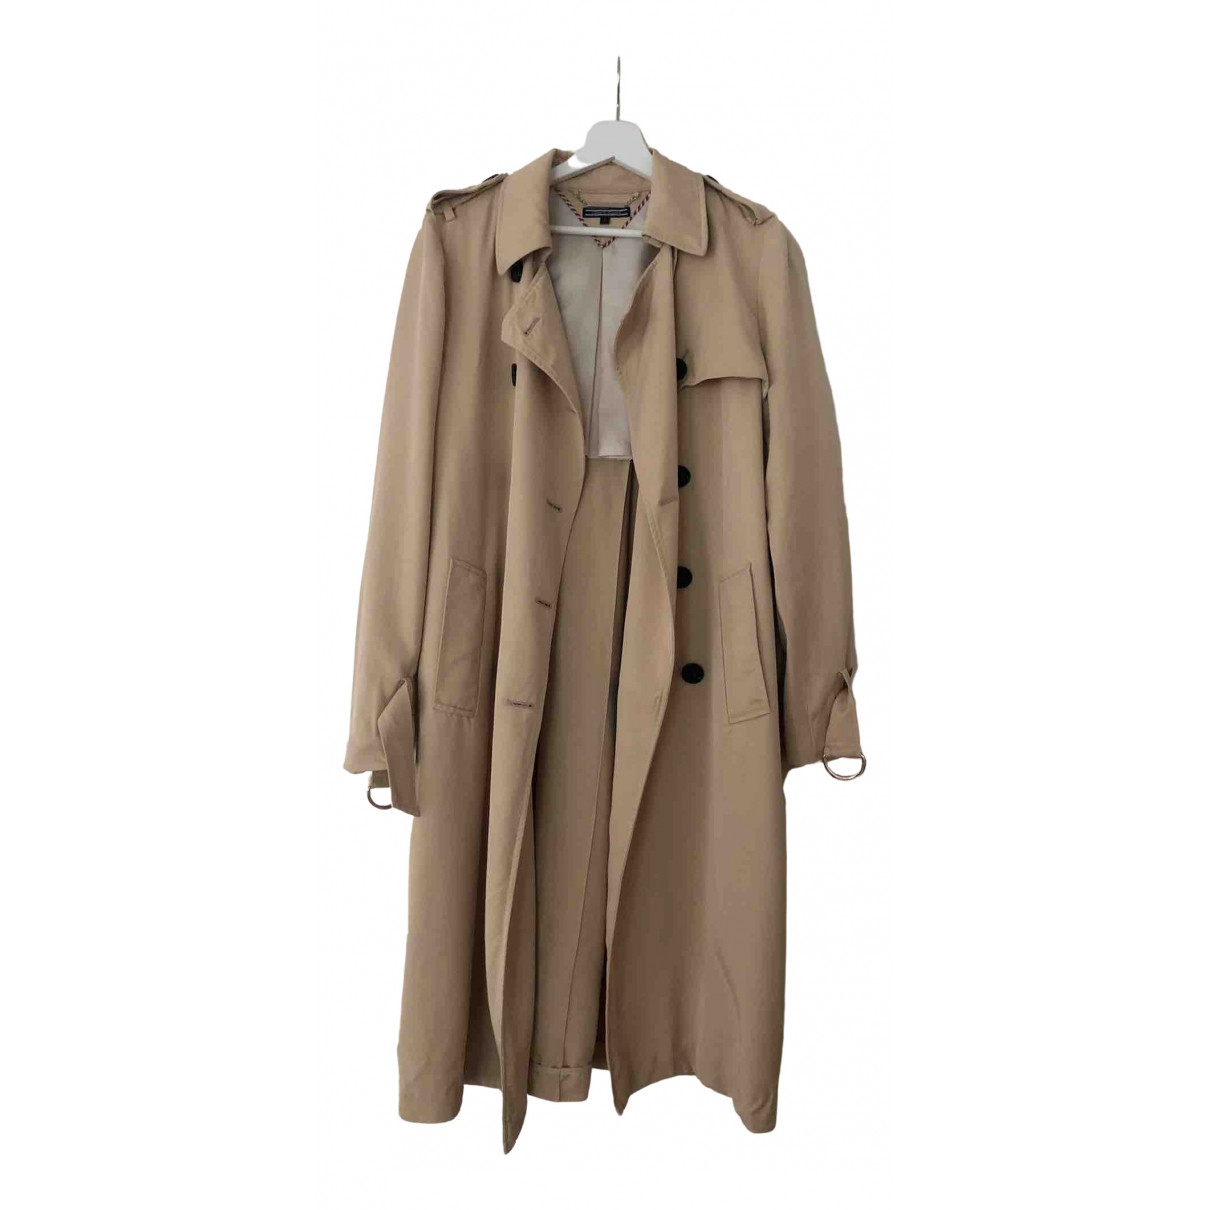 Tommy Hilfiger N Beige Cotton coat for Women 6 UK